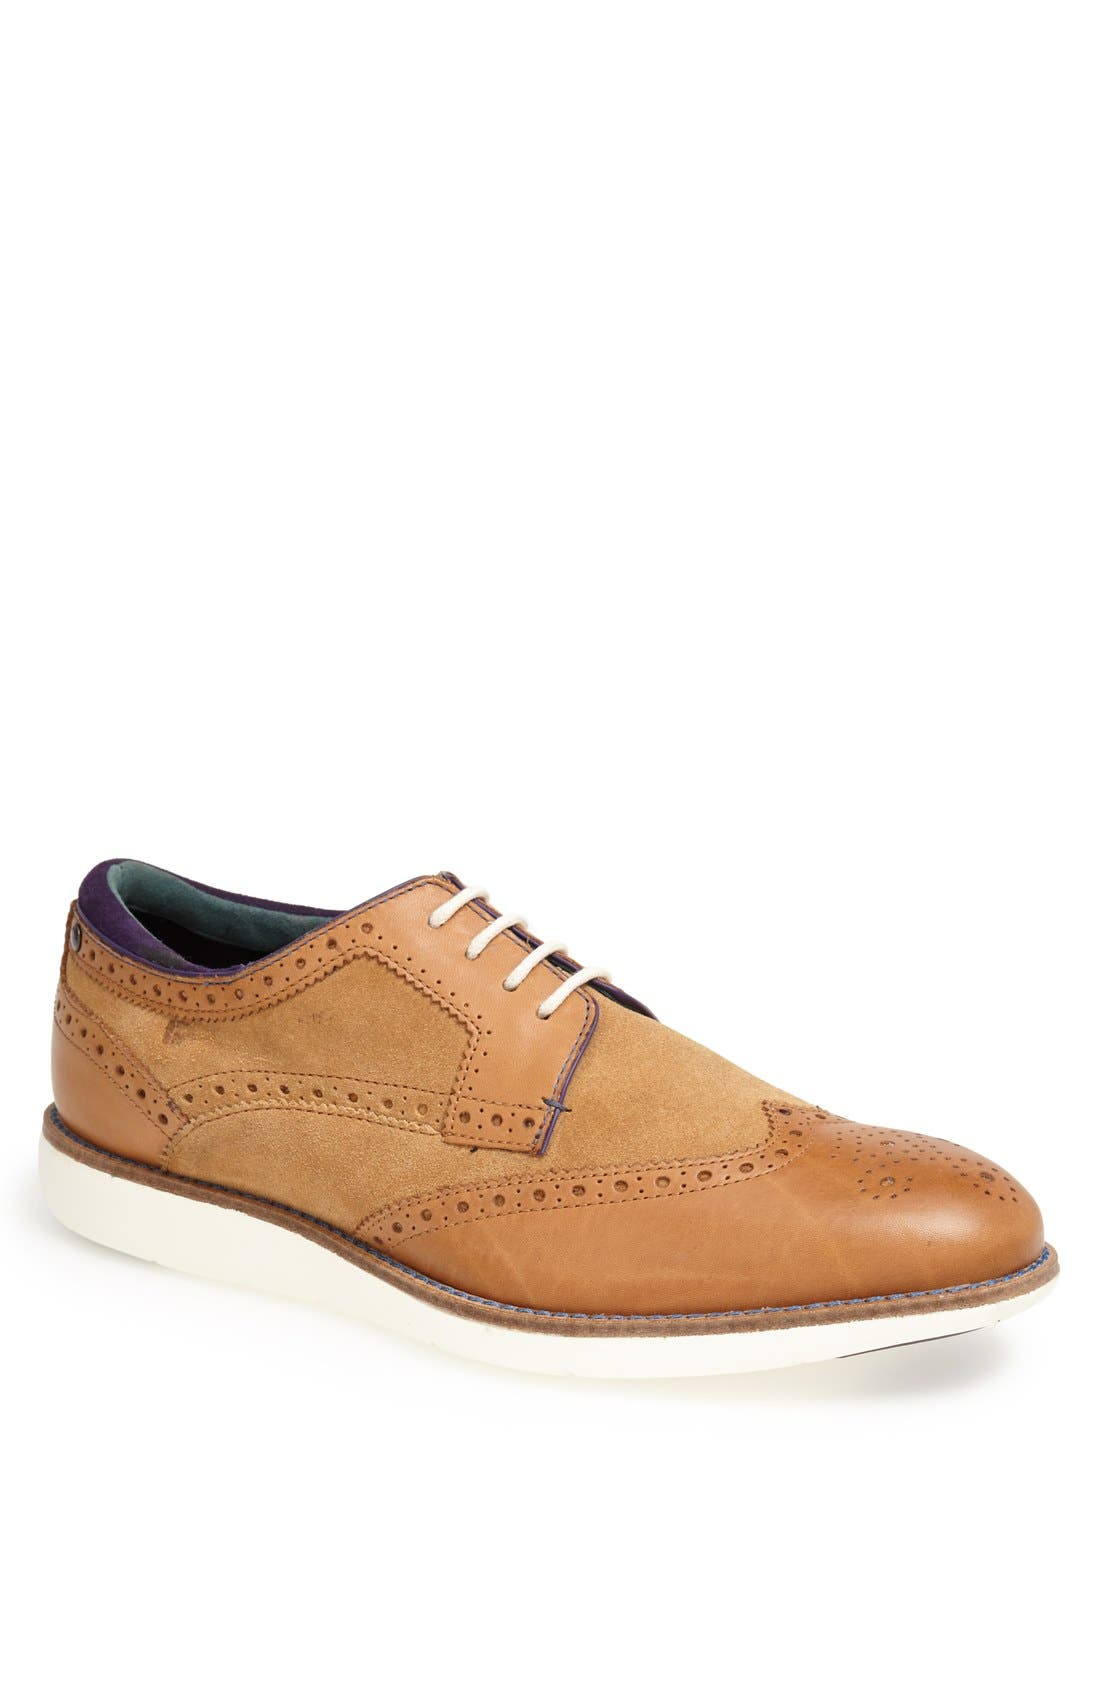 Main Image - Ted Baker London 'Treey' Wingtip